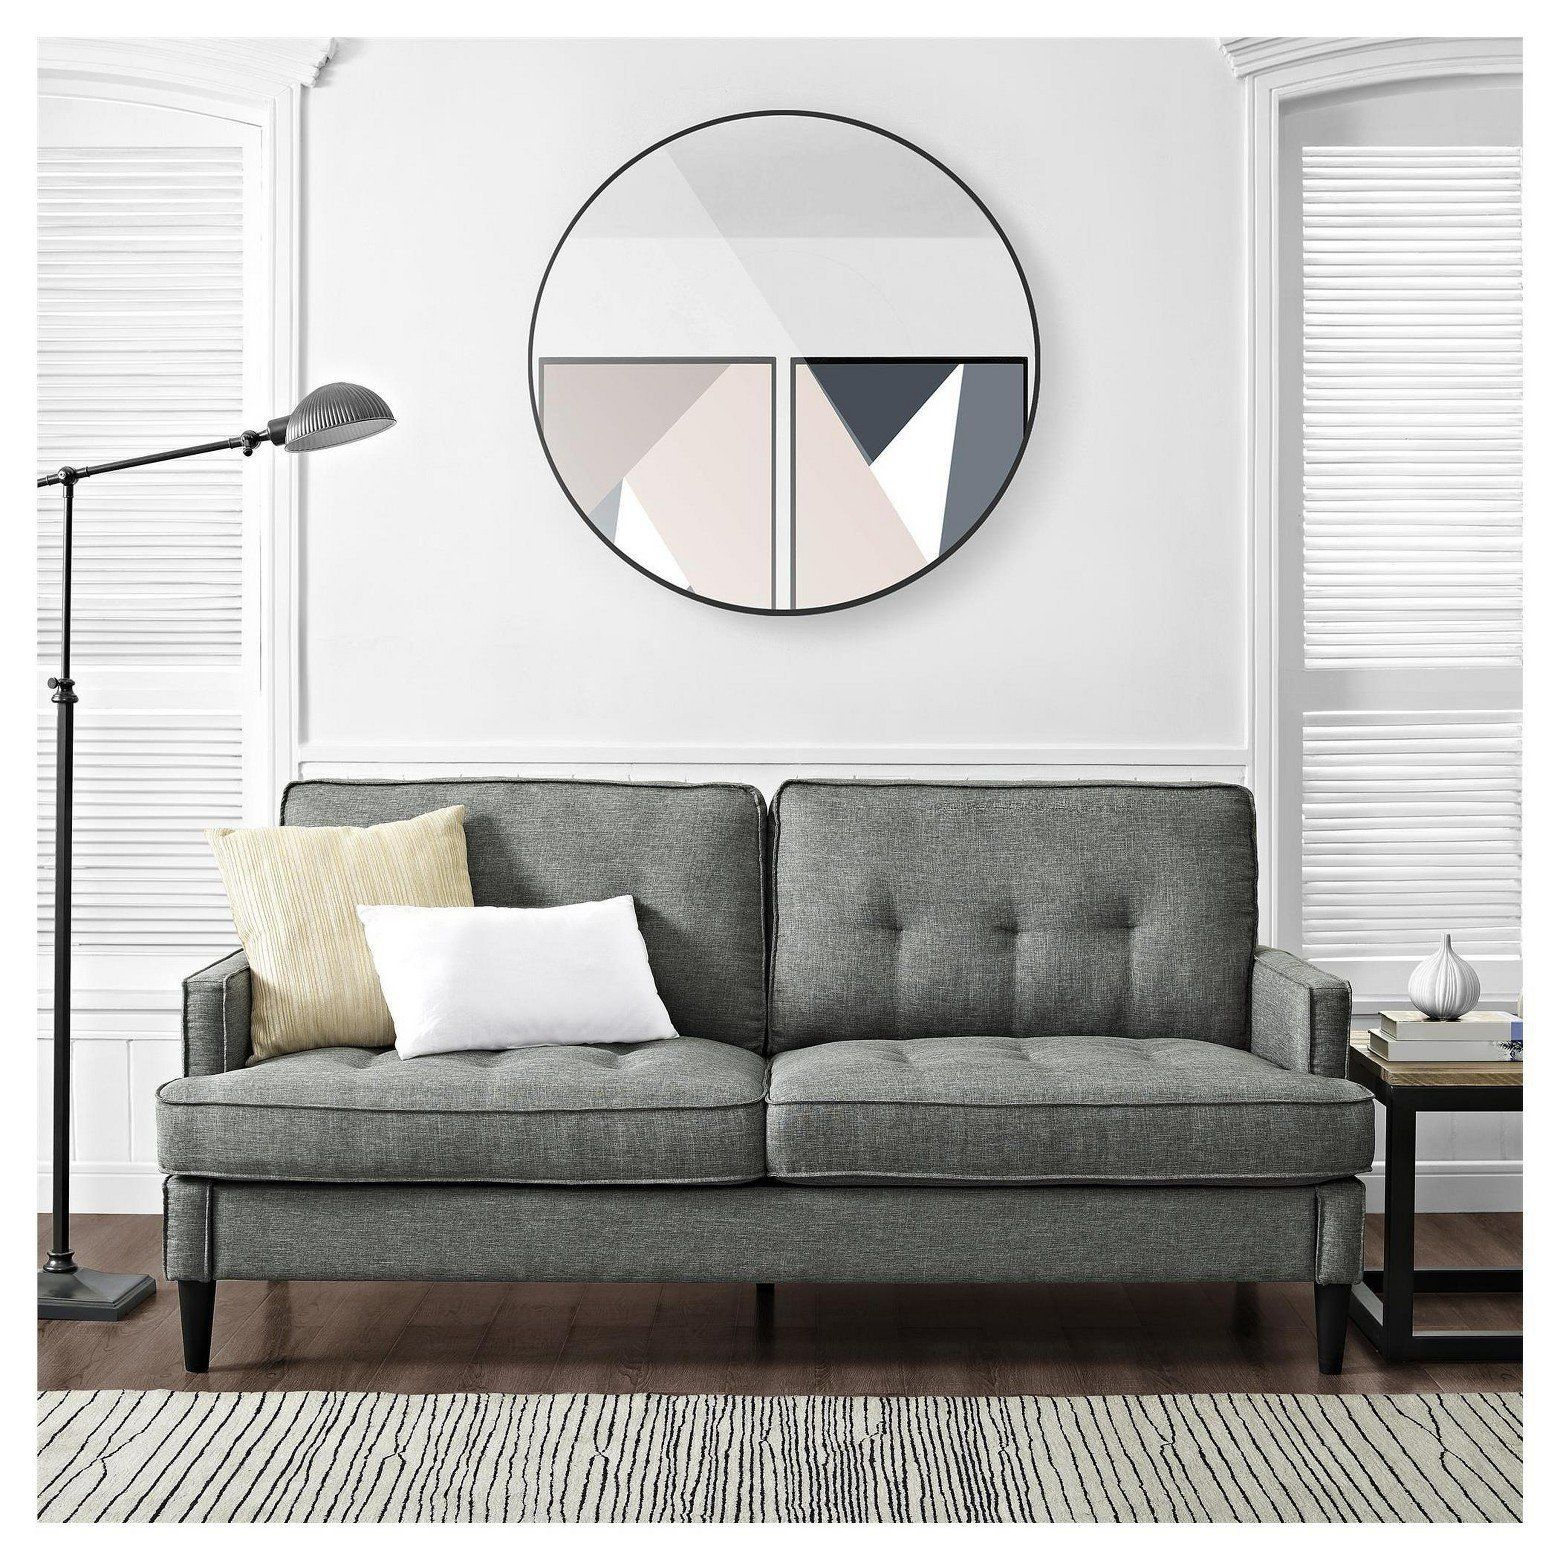 """Bring depth to your home without taking up too much room with the <a href=""""https://www.target.com/p/marley-mid-century-modern"""